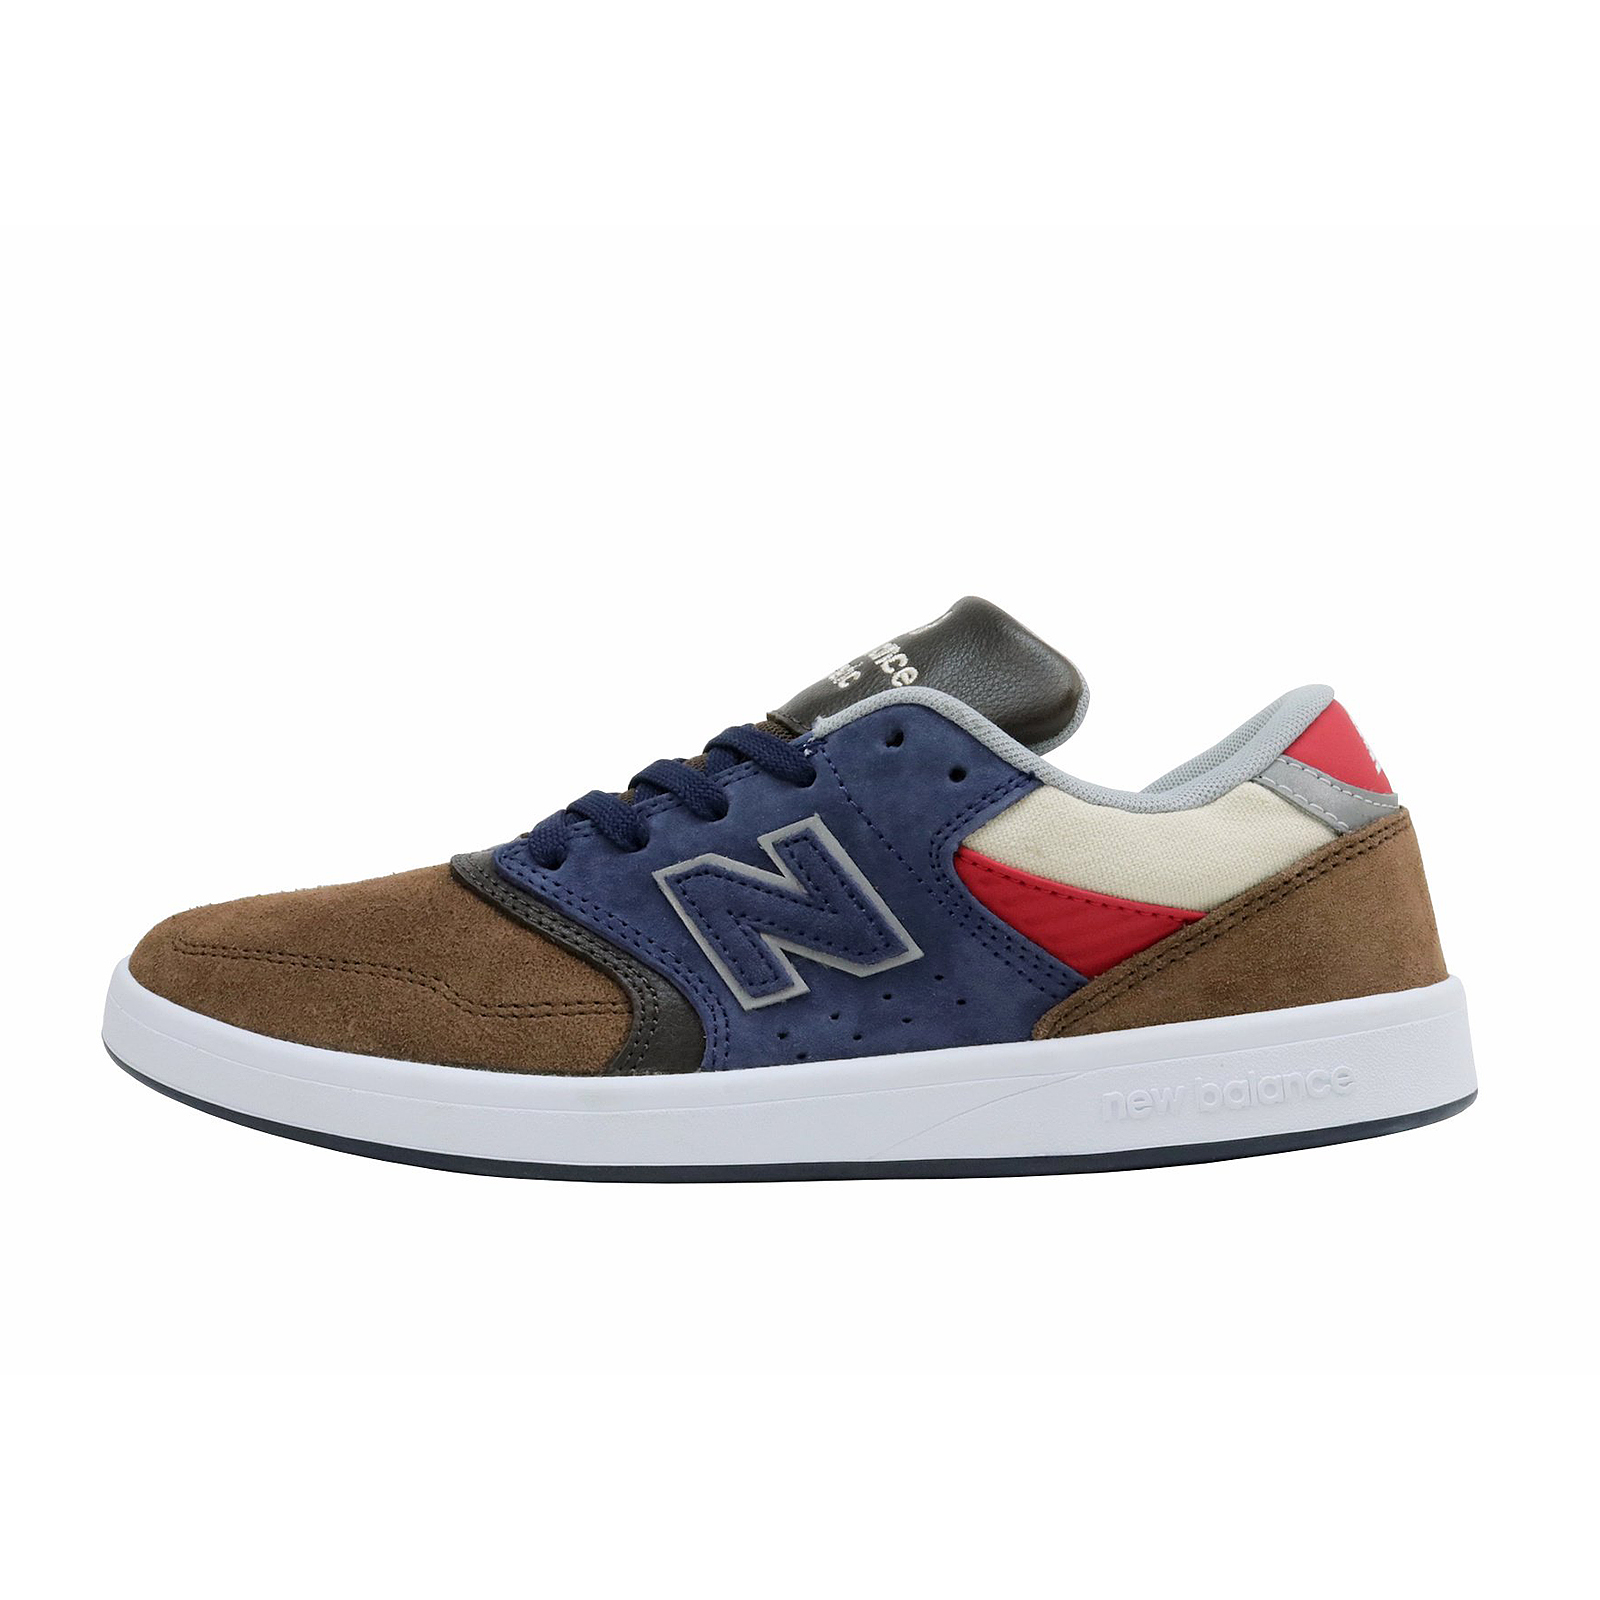 New Balance Baskets Numérique Skateboarding Brun/Bleu Daim / Leather brun